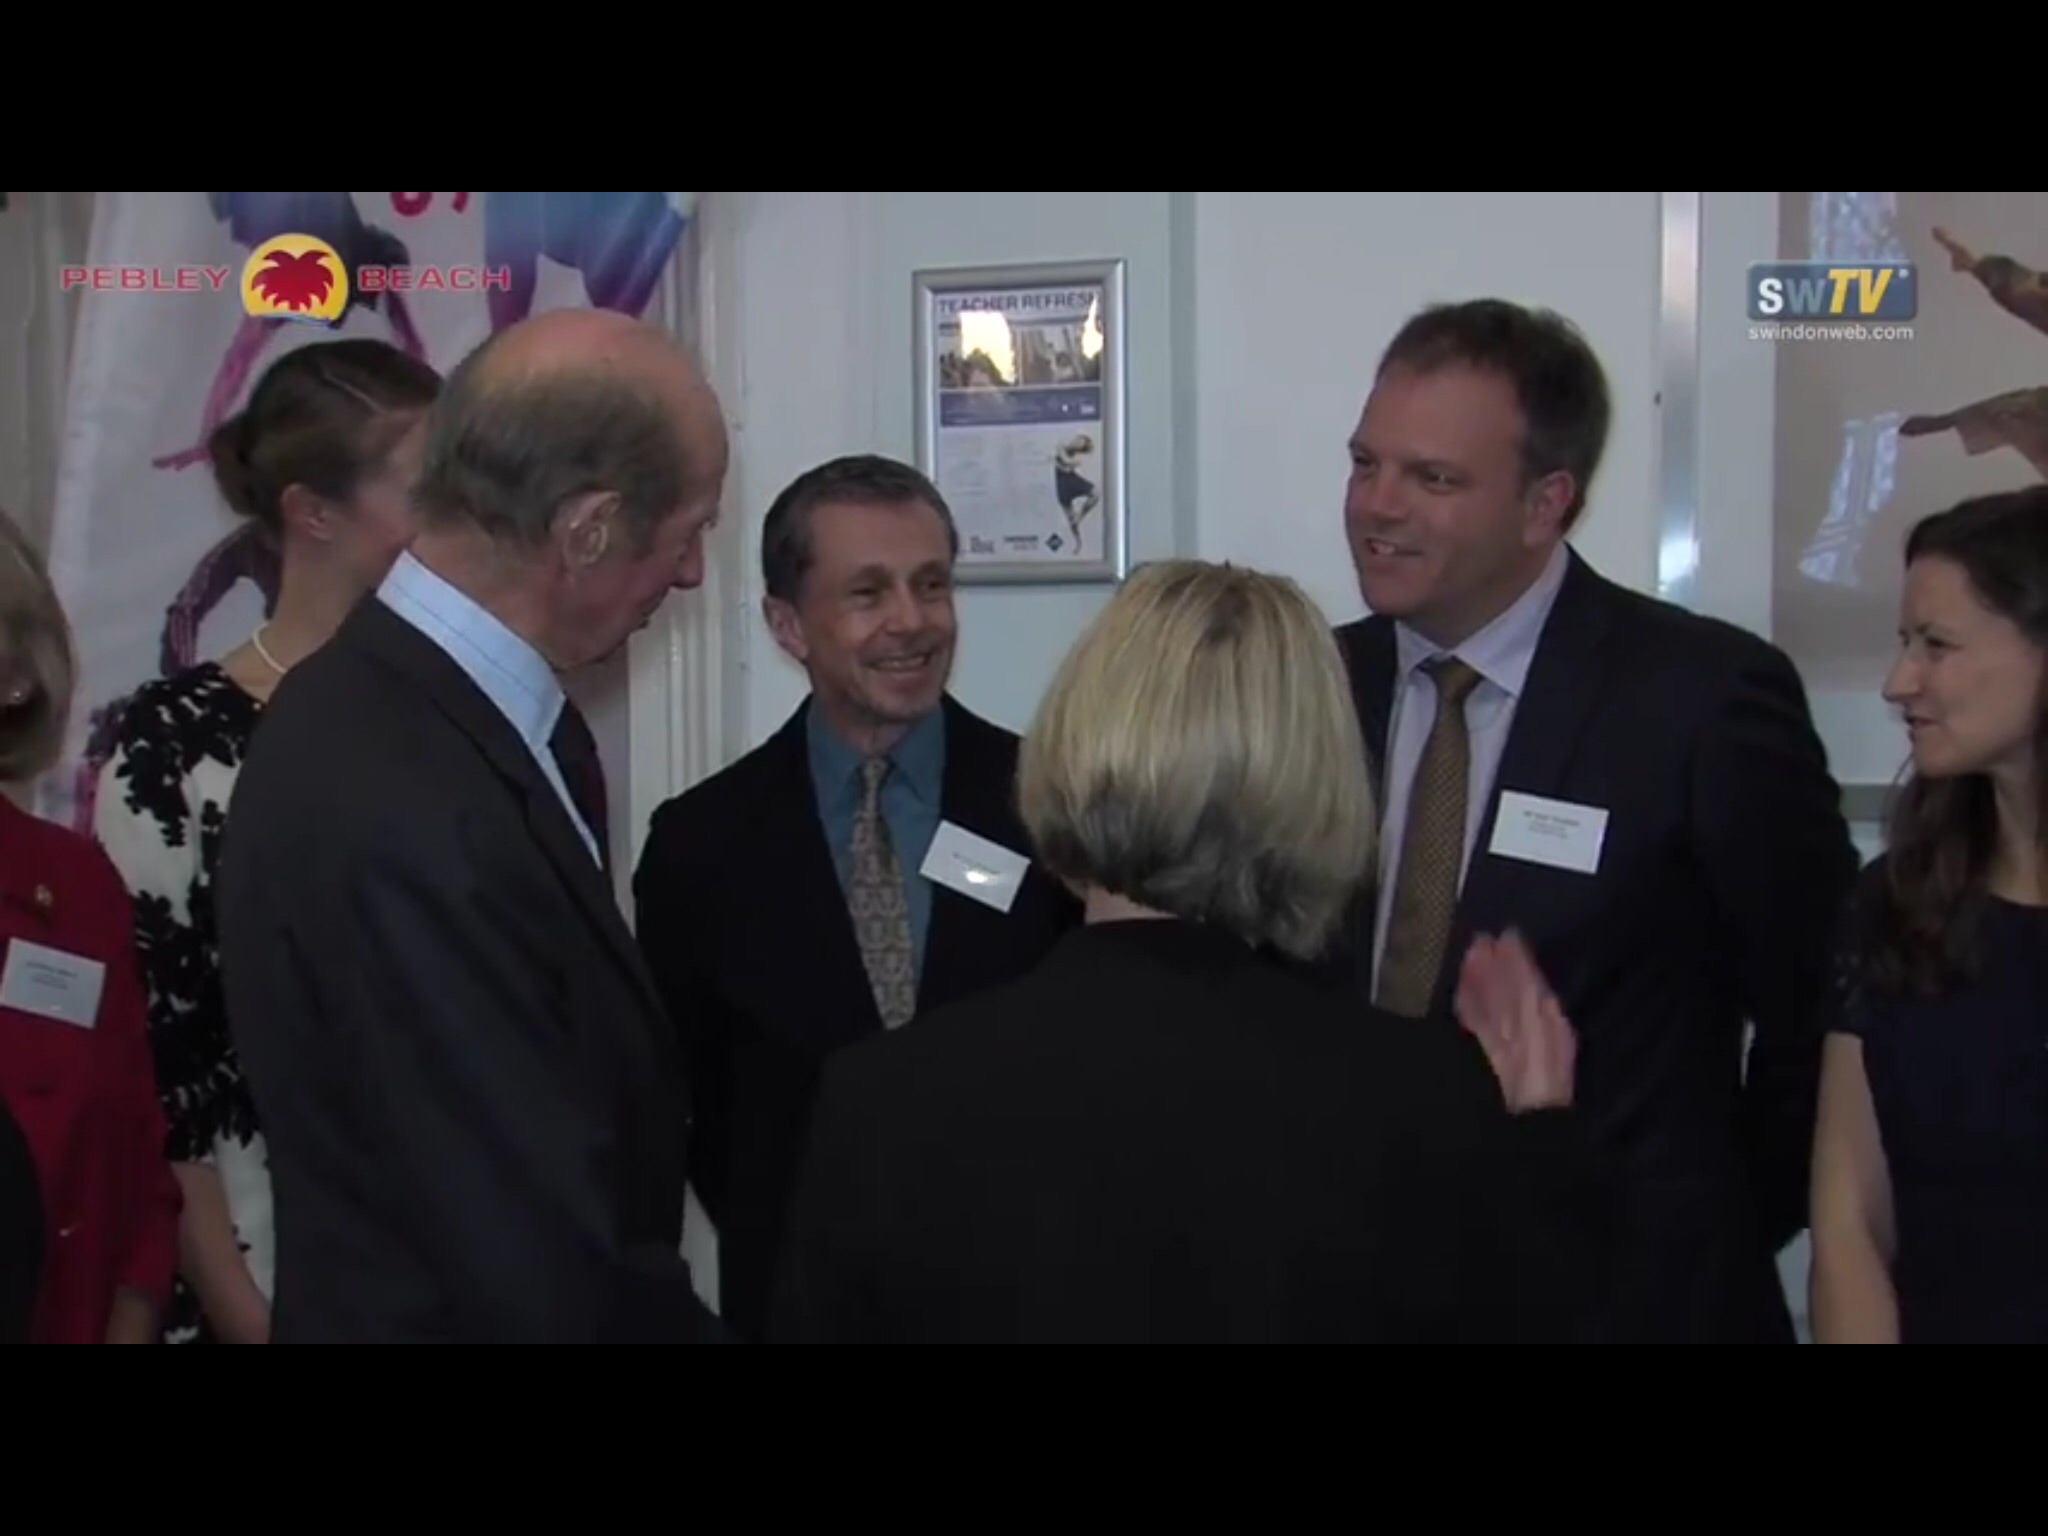 As a supporter of Swindon Dance I was invited to meet HRH Duke of Kent